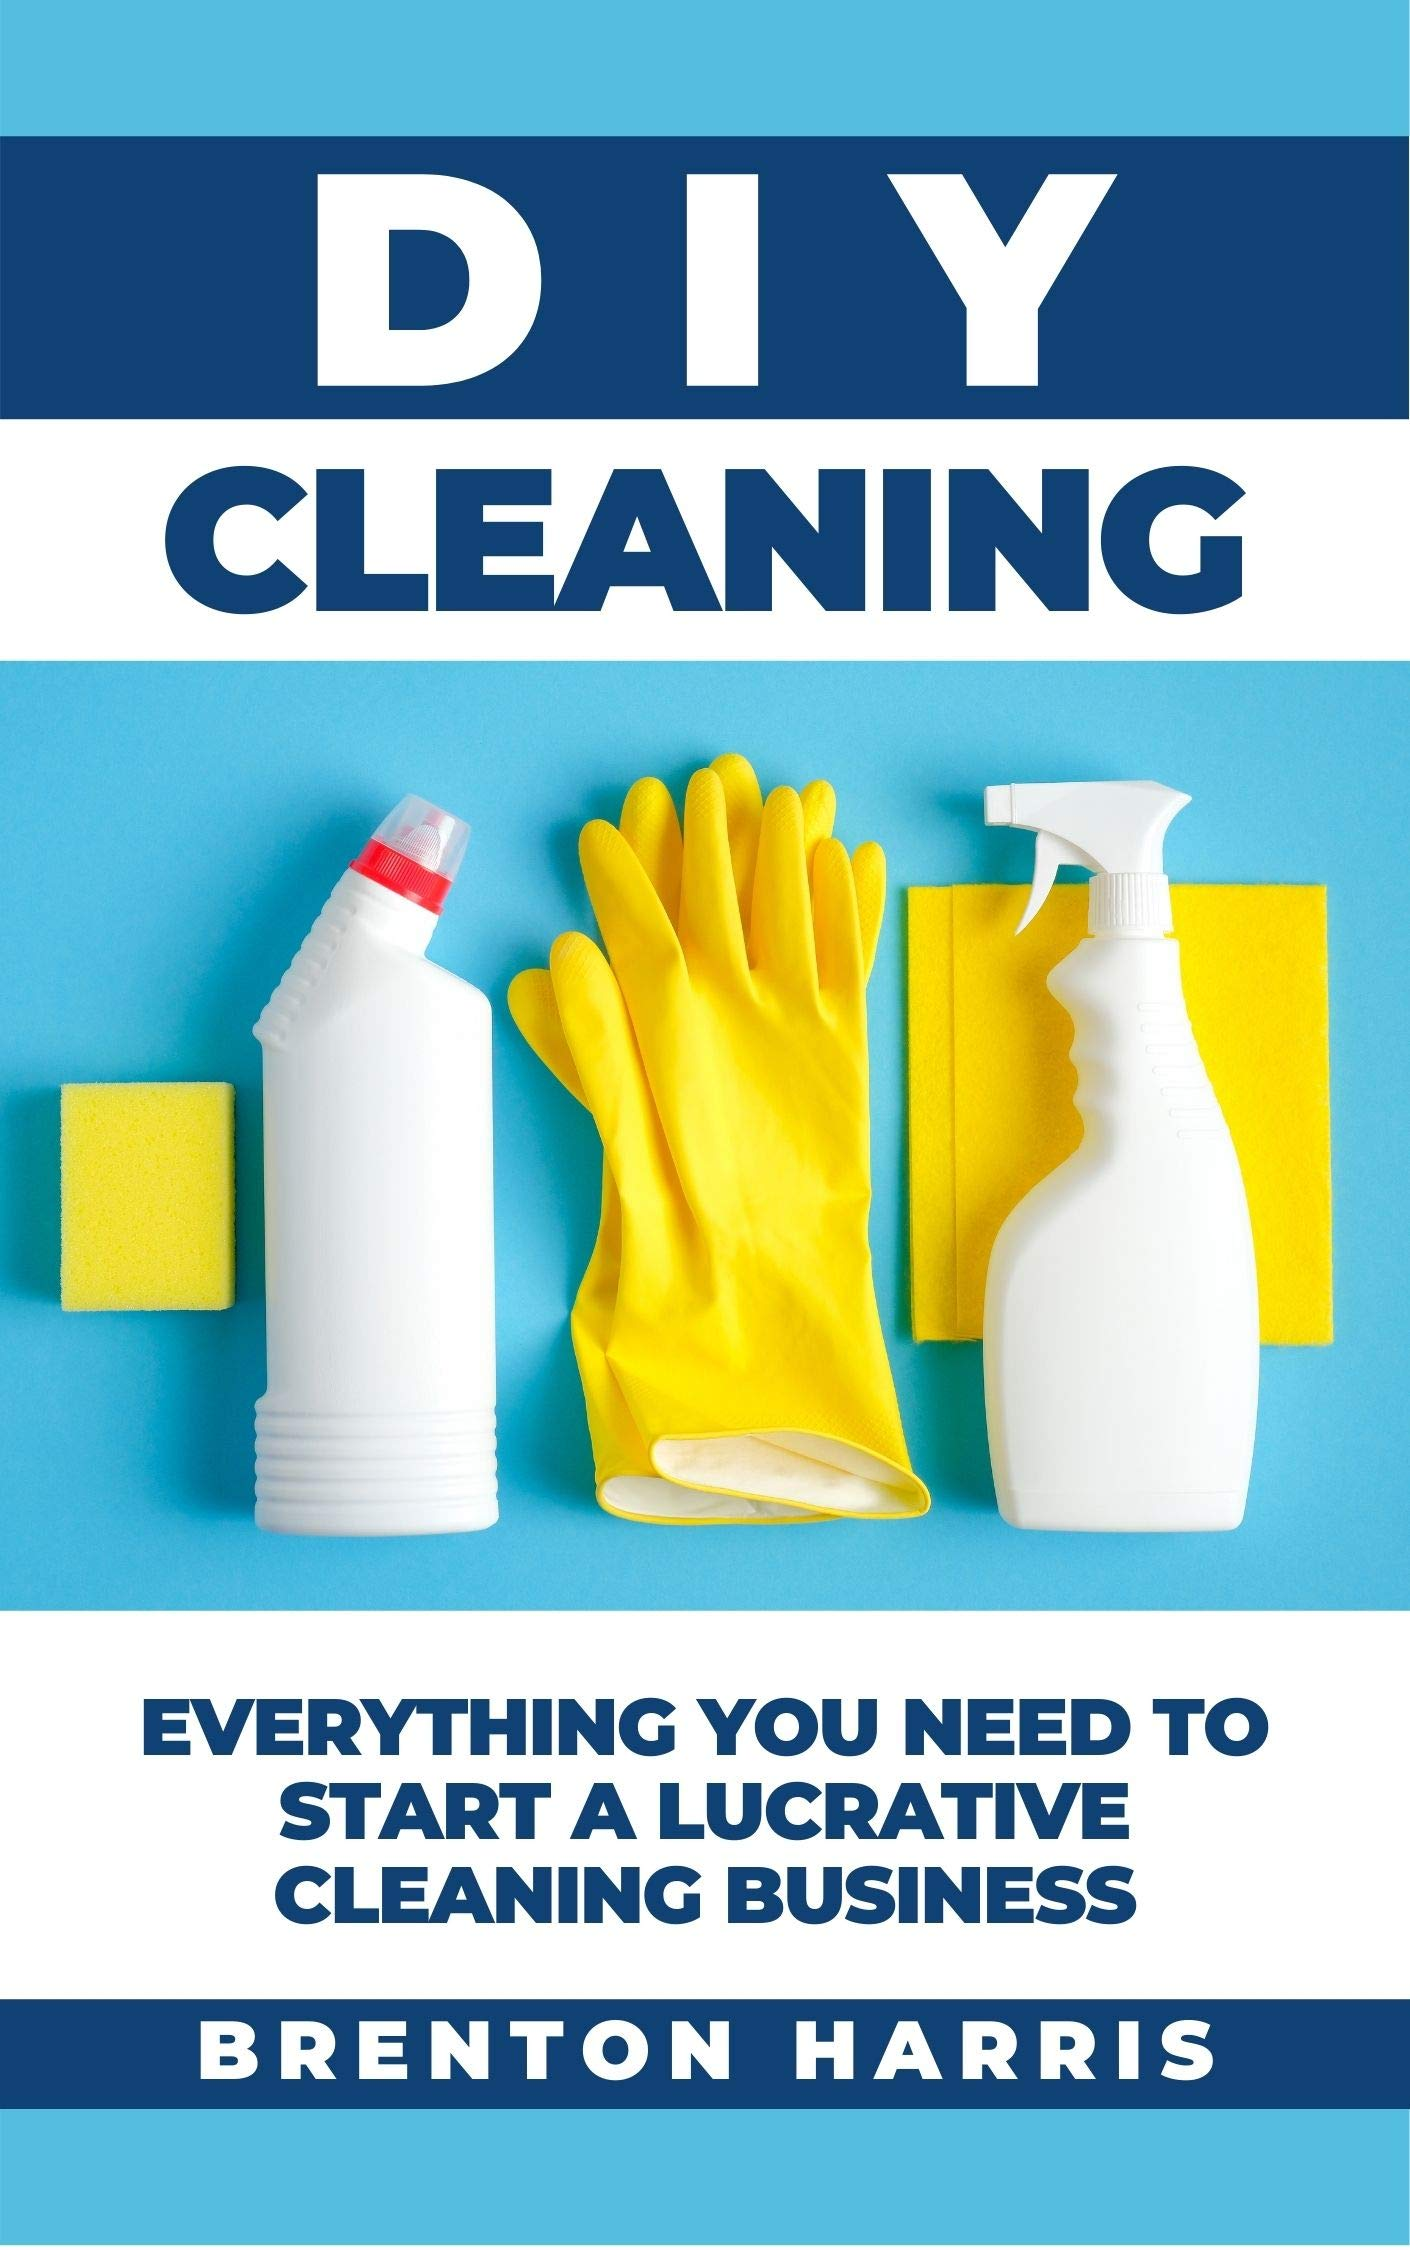 DIY Cleaning: Everything You Need to Start a Lucrative Cleaning Business